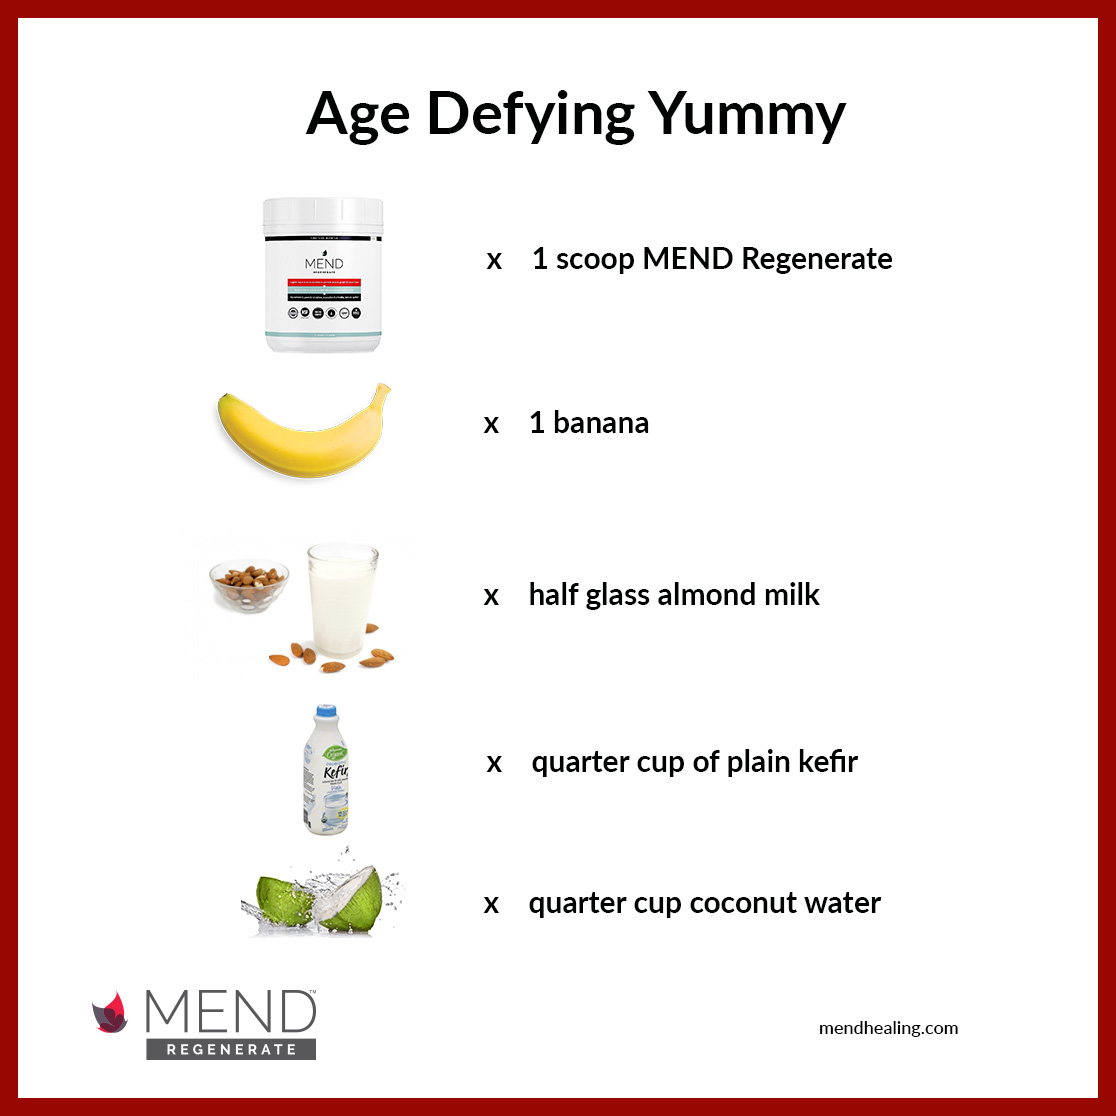 Age Defying Yummy